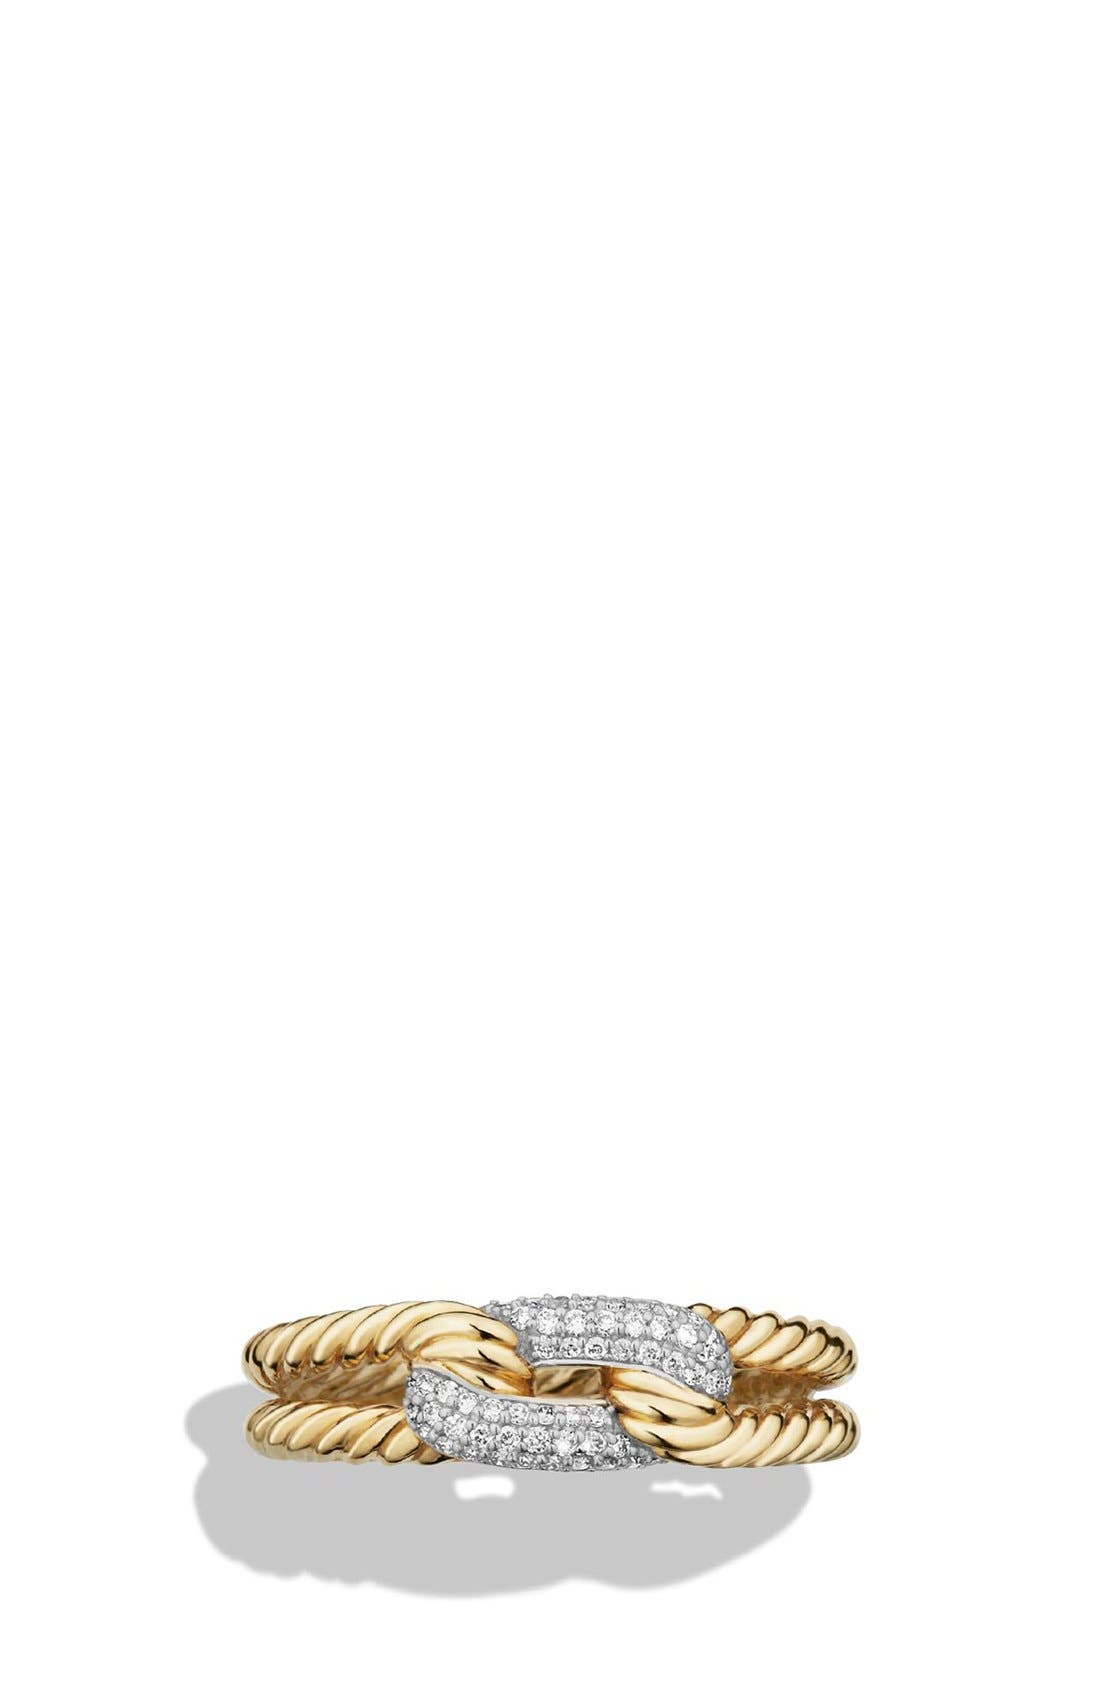 'Petite Pavé' Loop Ring with Diamonds in 18K Gold,                             Alternate thumbnail 4, color,                             GOLD